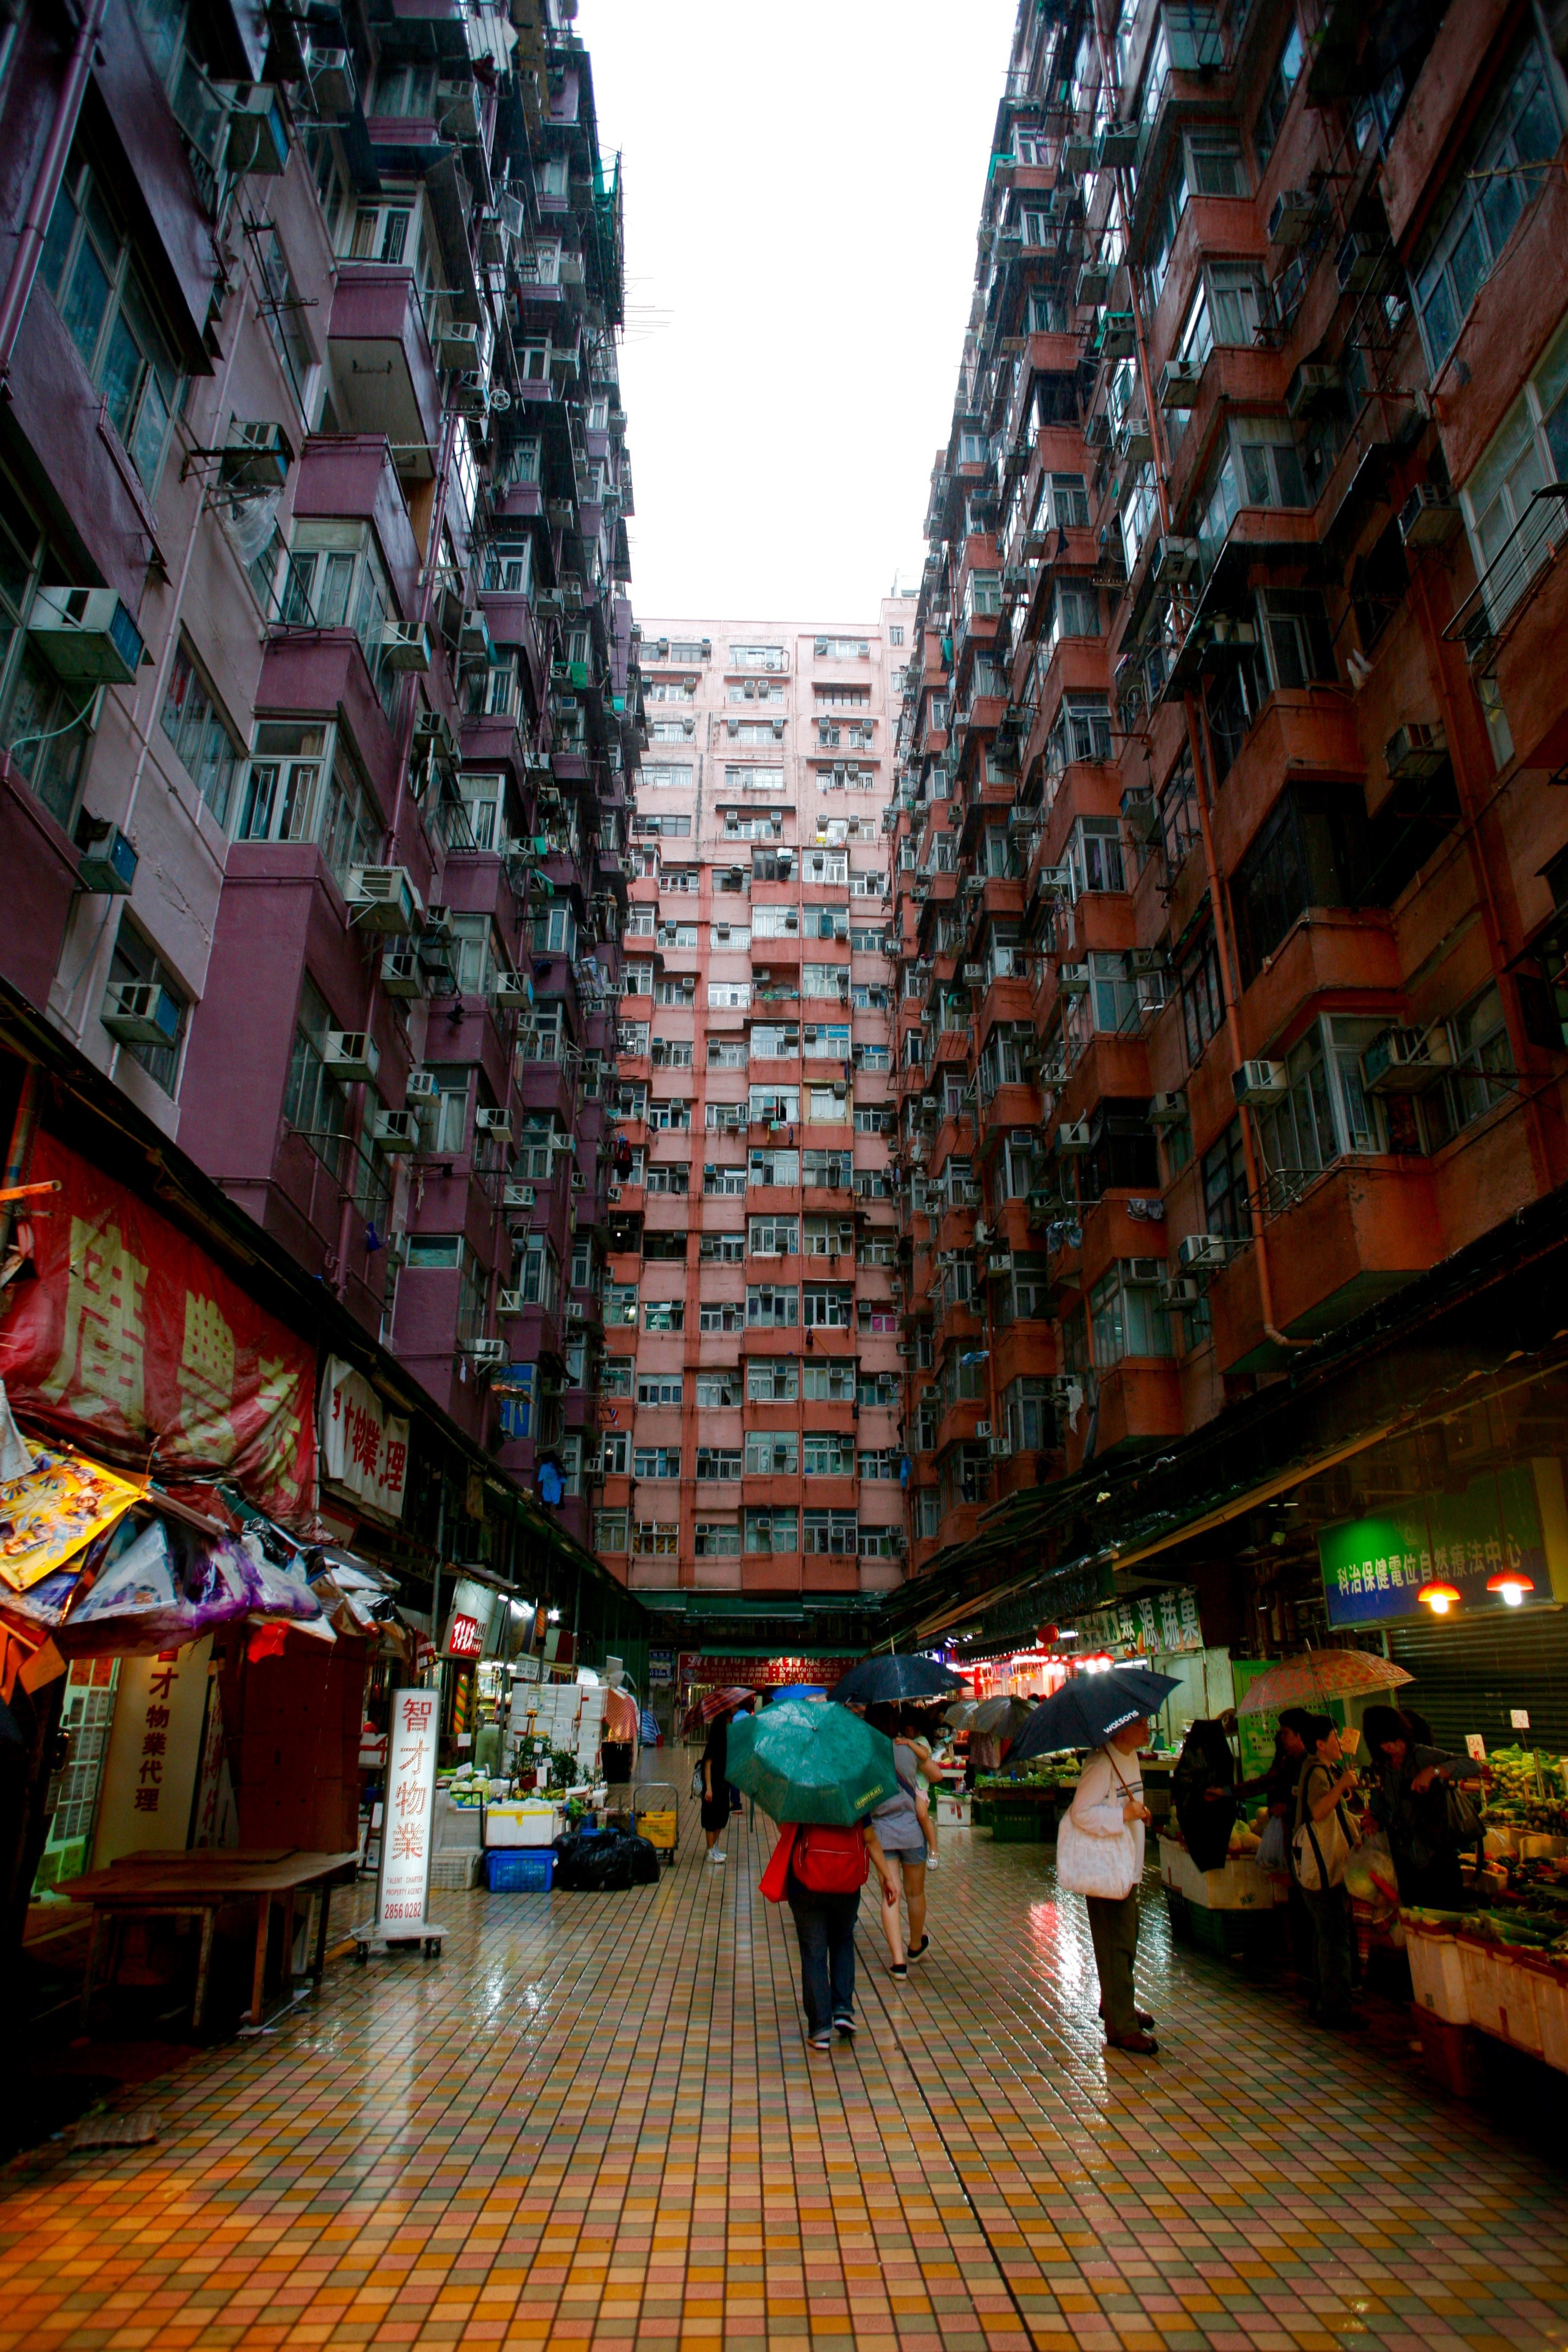 Towering Buildings and Maze-Like Streets of Hong Kong (15 pics)